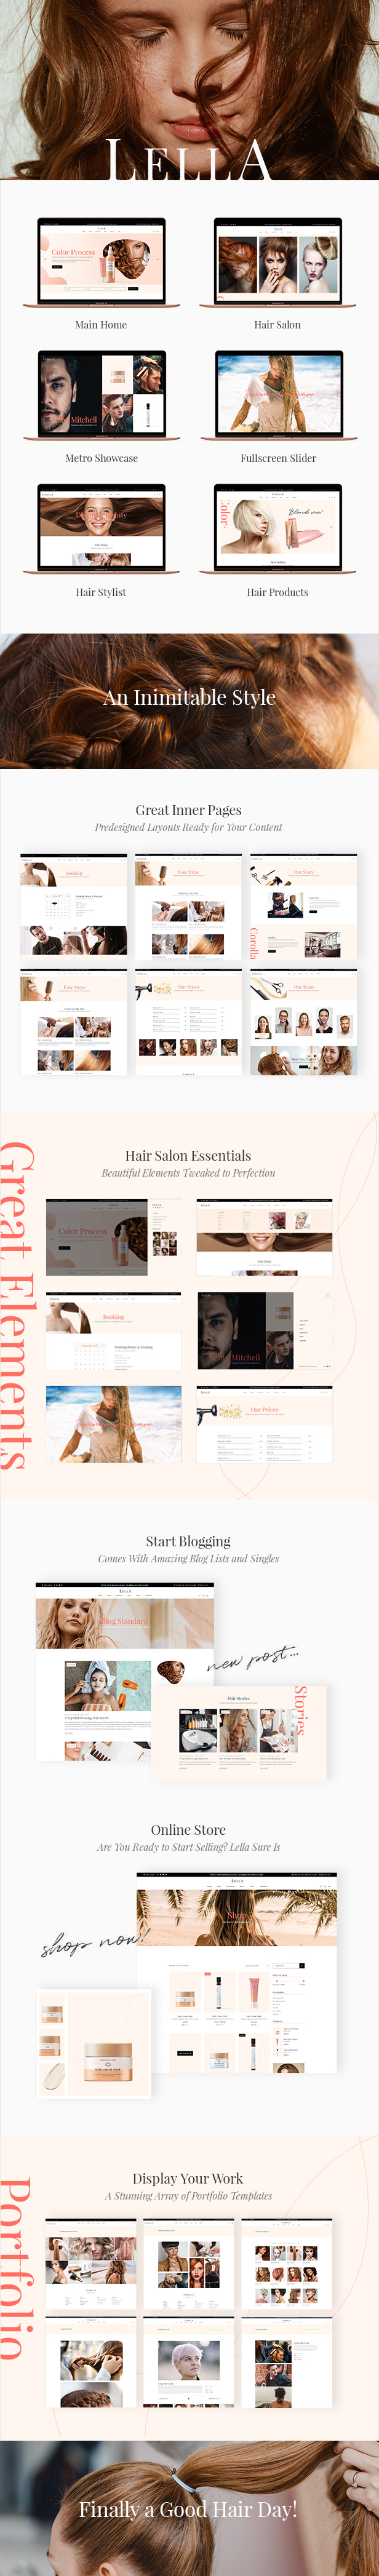 Lella - Hairdresser and Beauty Salon Theme - 2